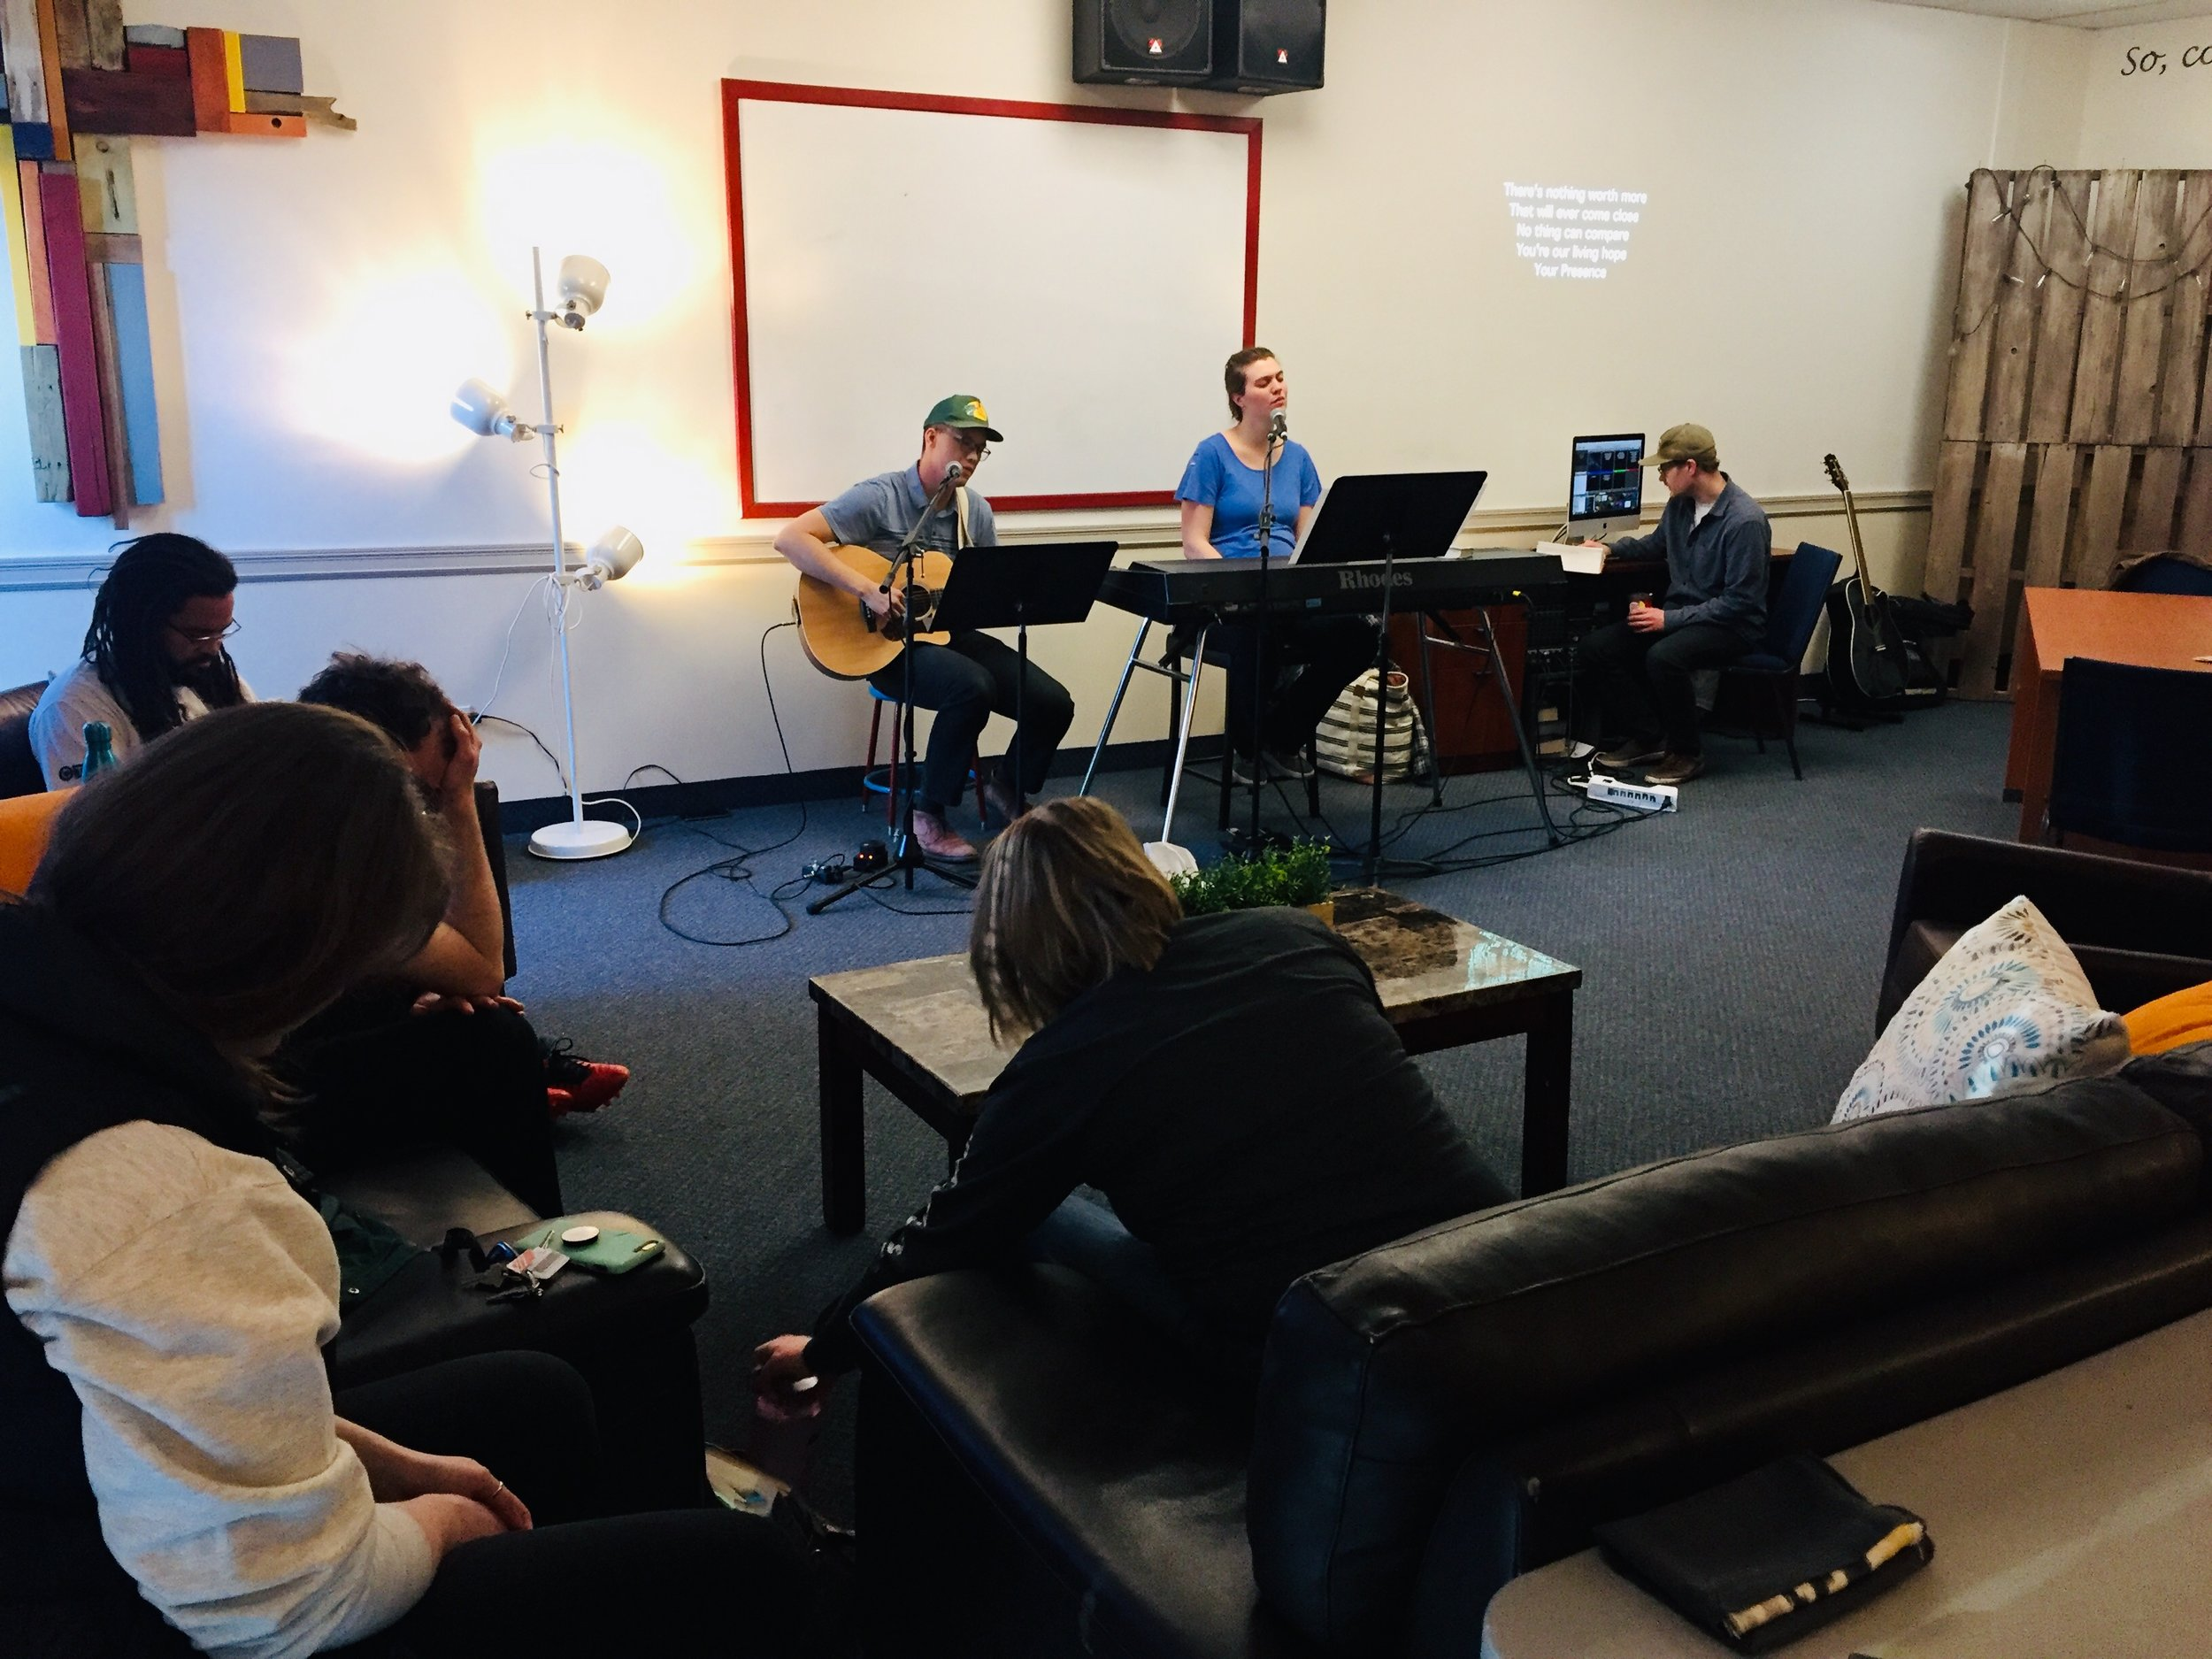 HOPE - While in Alberta, Canada we attended the House of Prayer in Edmonton. Karilyn's sister and her husband (Peter and Kathleen Wing) led worship.